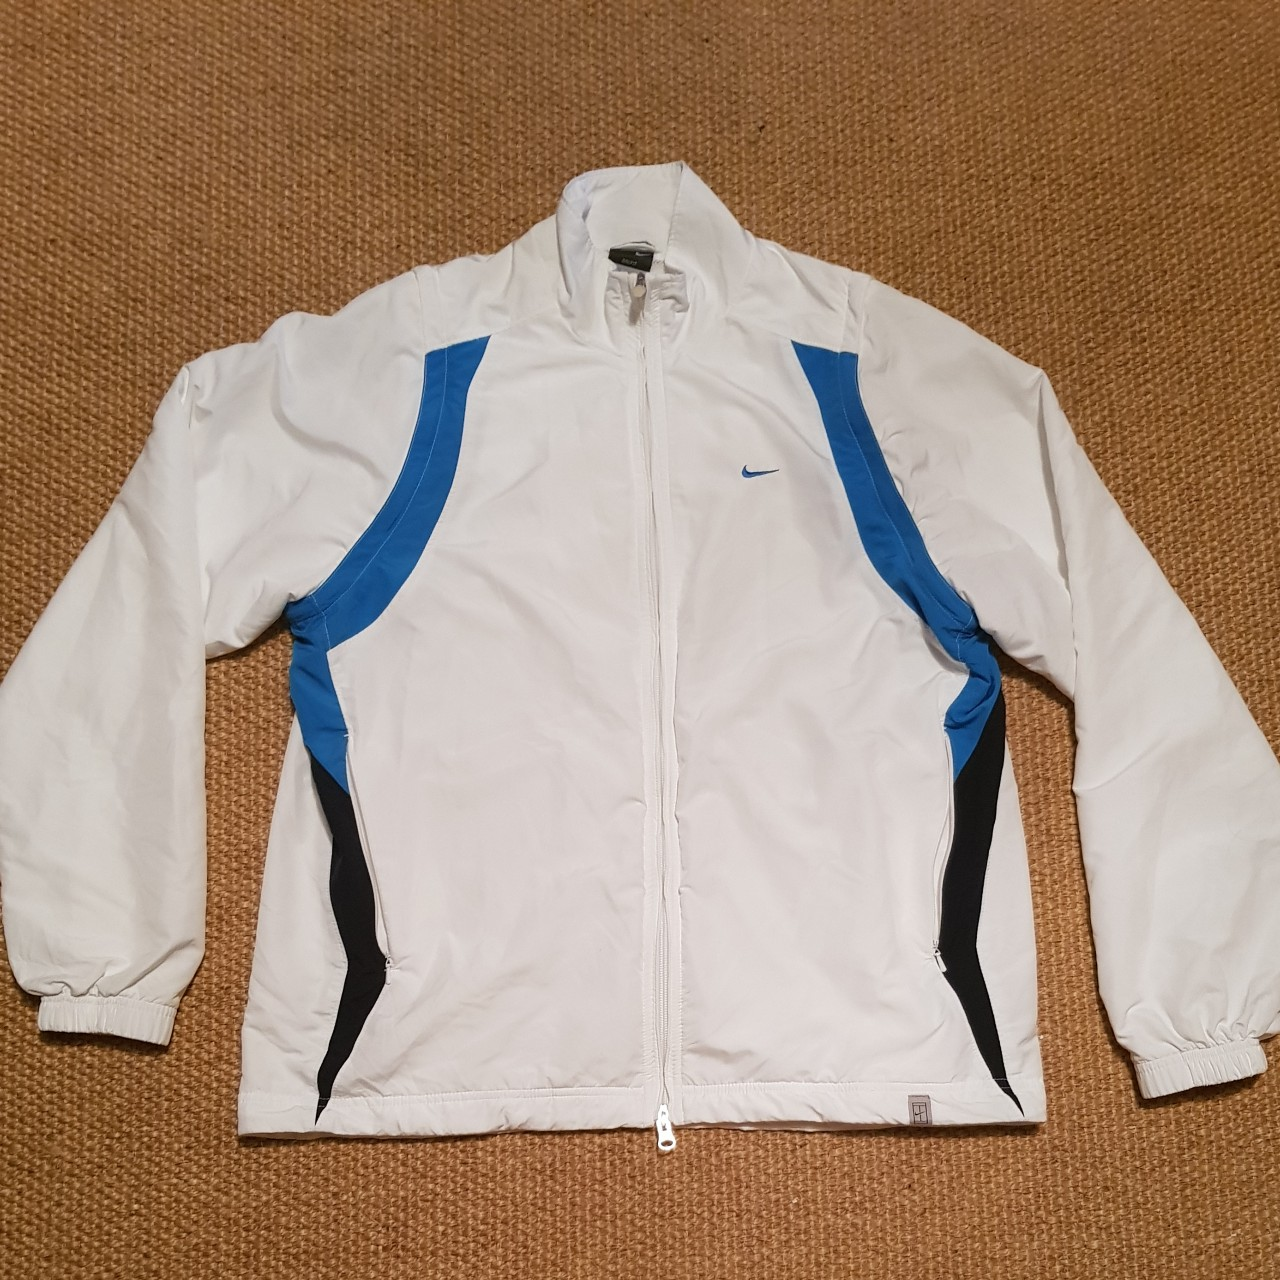 Vintage white nike sports jacket with blue and Depop